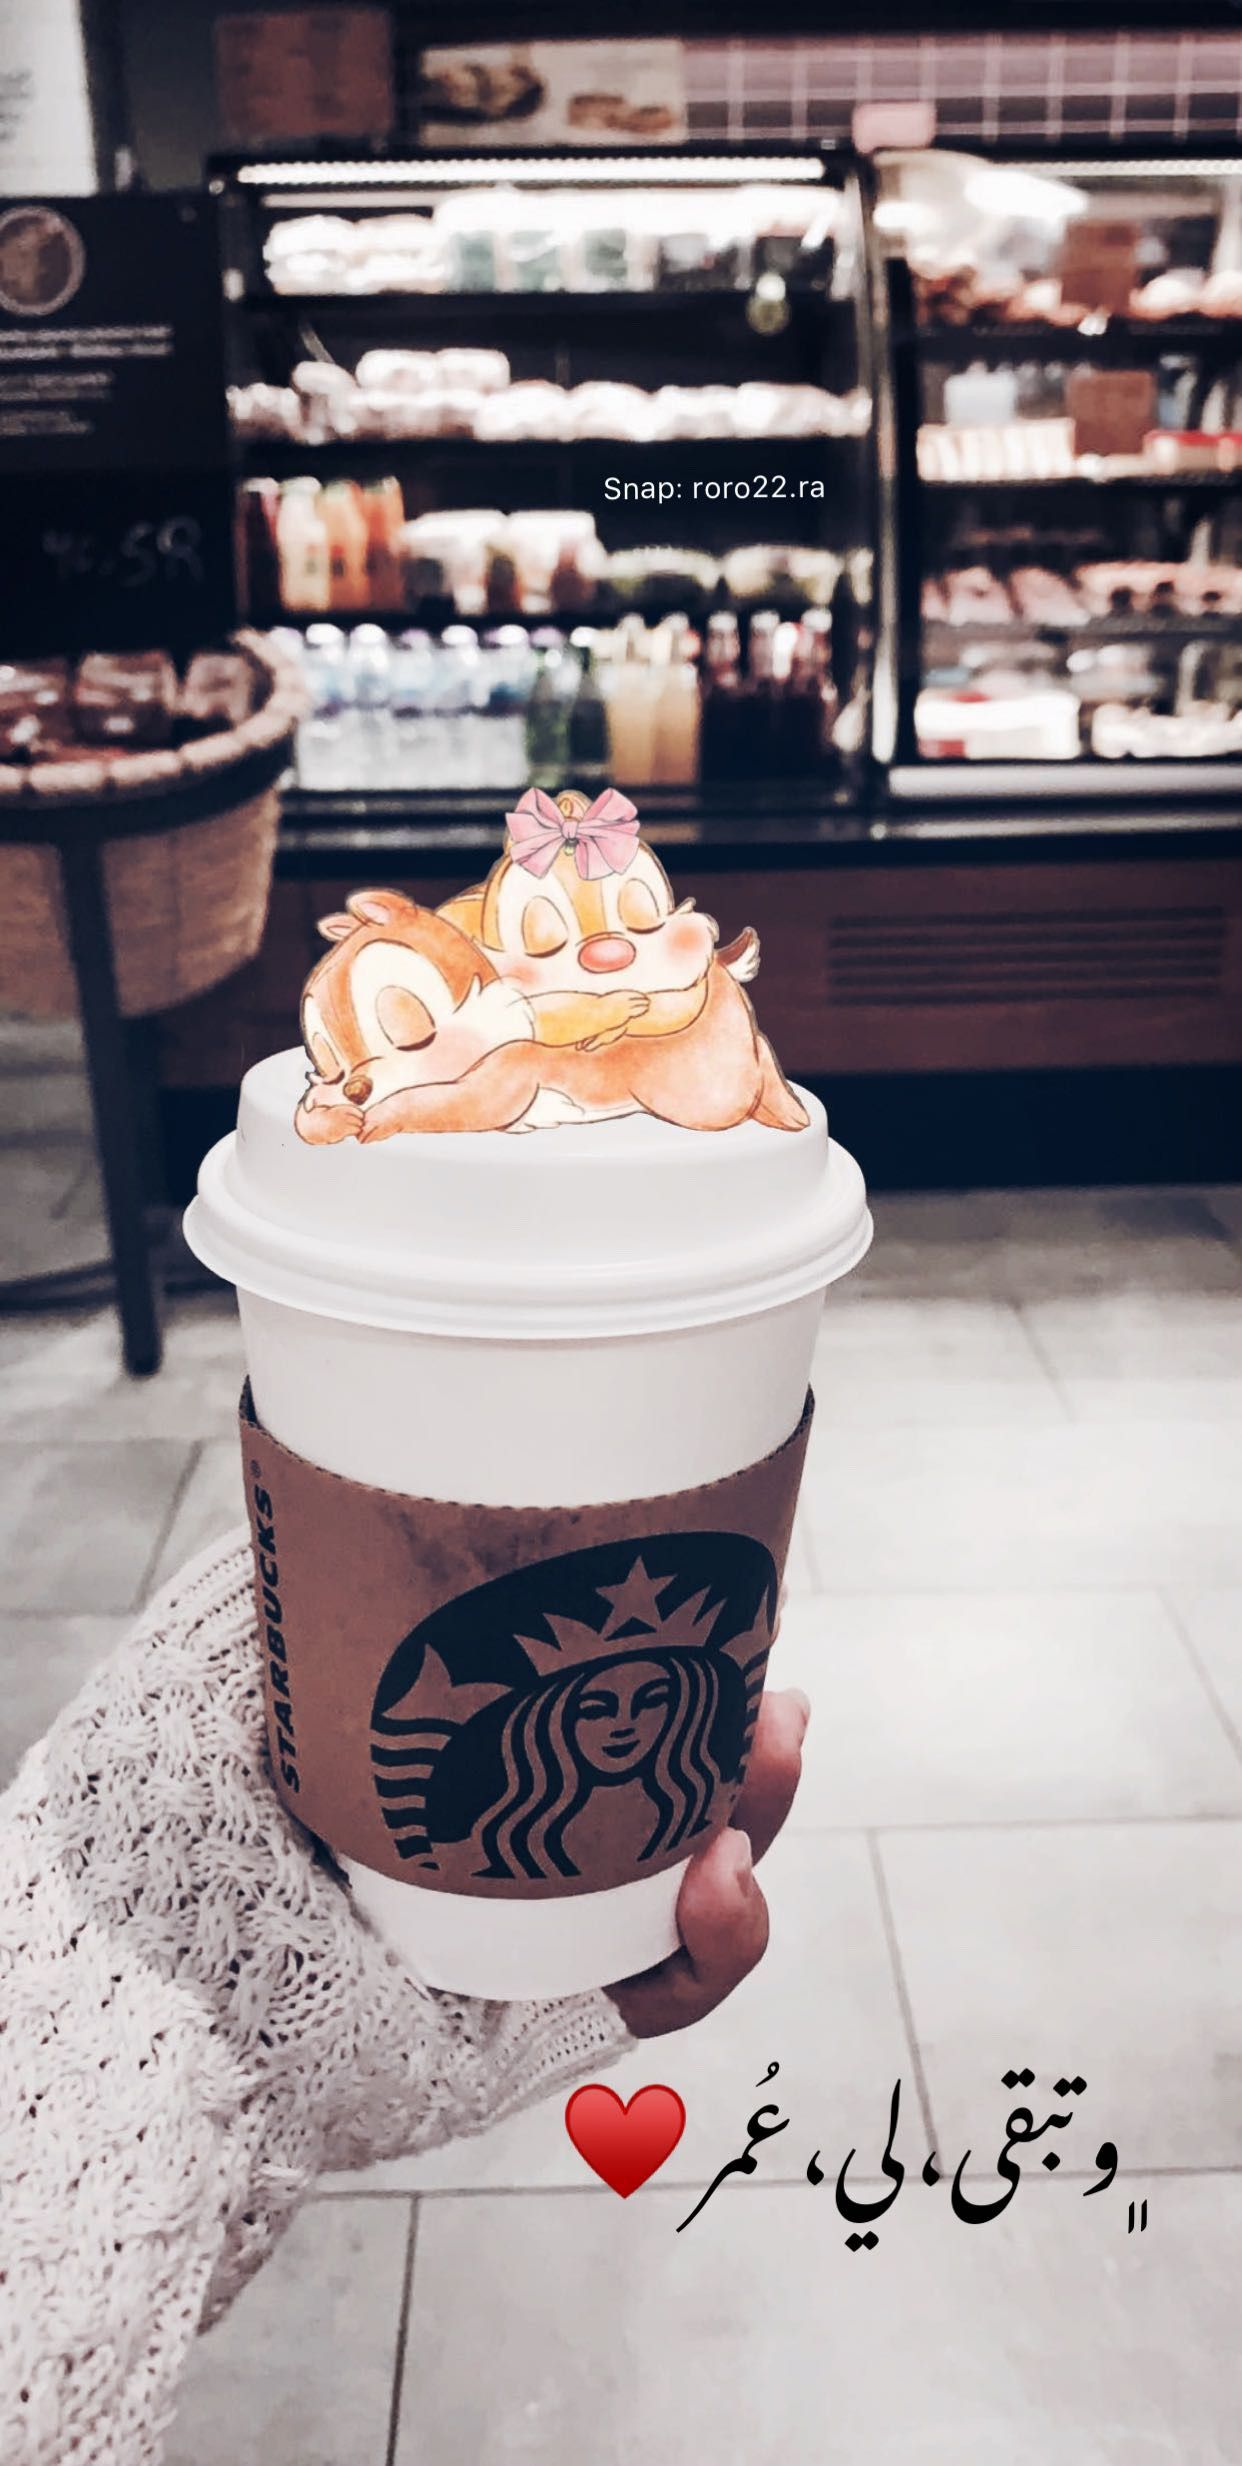 Pin by roro🦋📷. on يوميات Dunkin donuts coffee cup